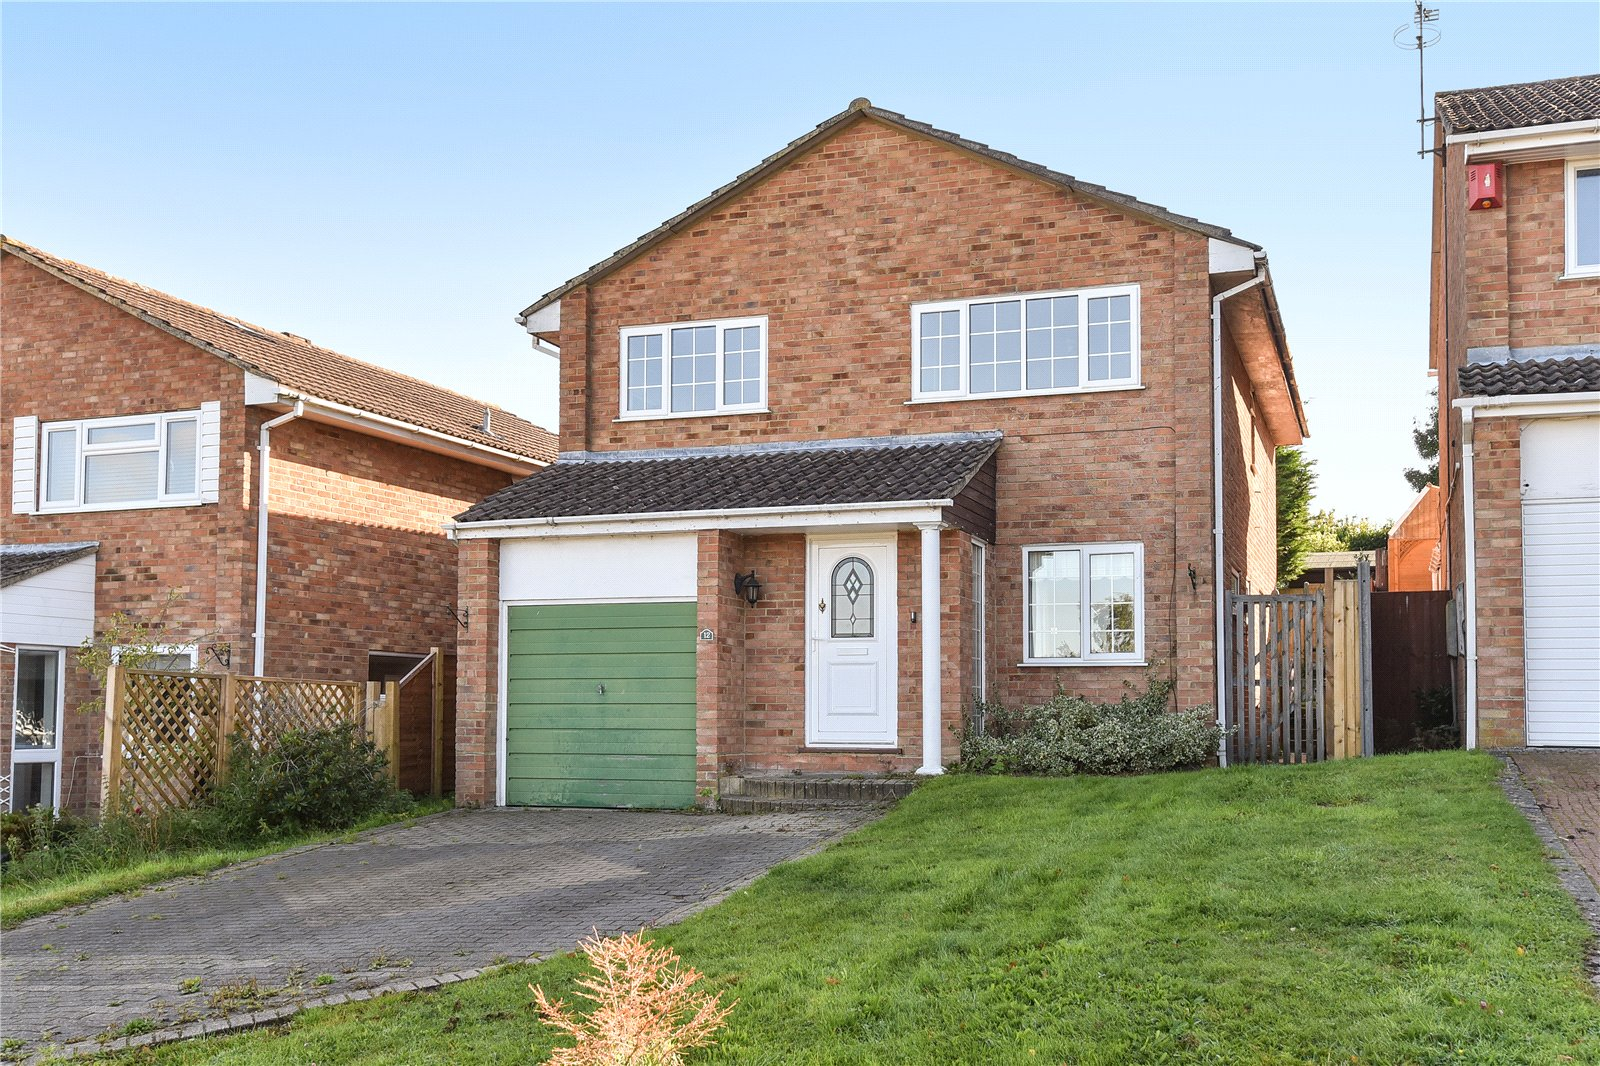 4 Bedrooms Detached House for sale in Nuffield Drive, Owlsmoor, Sandhurst, Berkshire, GU47